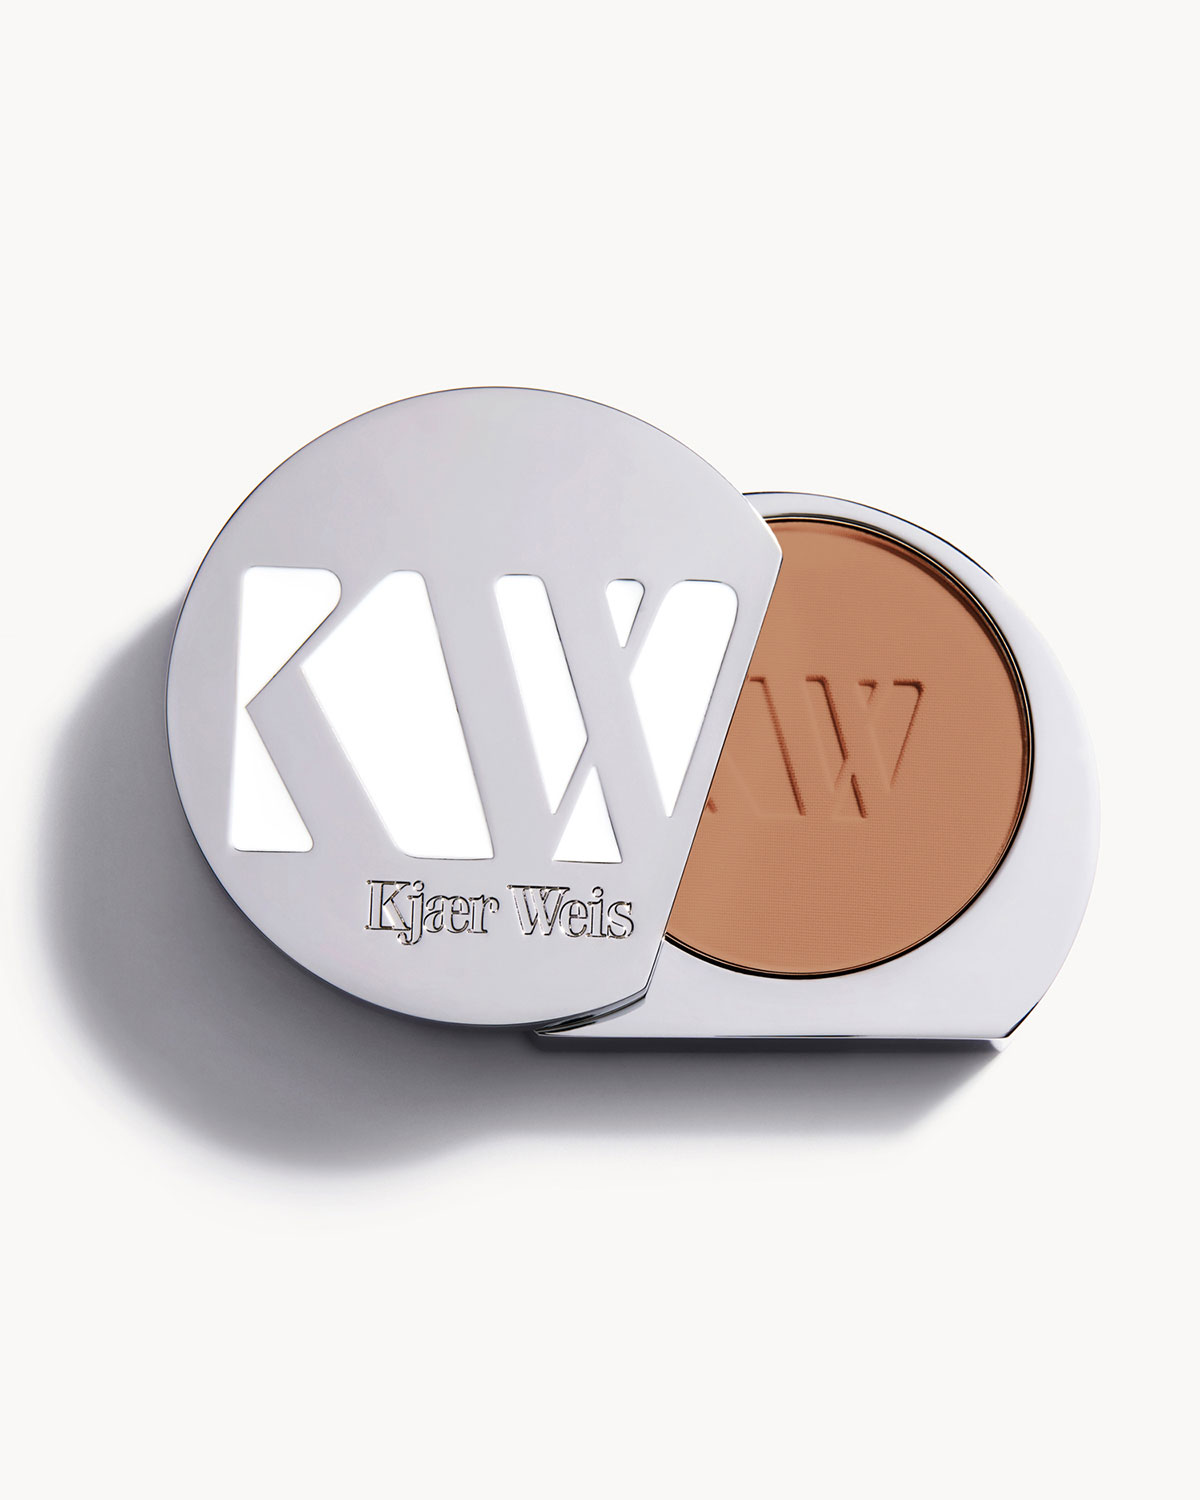 Kjaer Weis Pressed Powder Compact